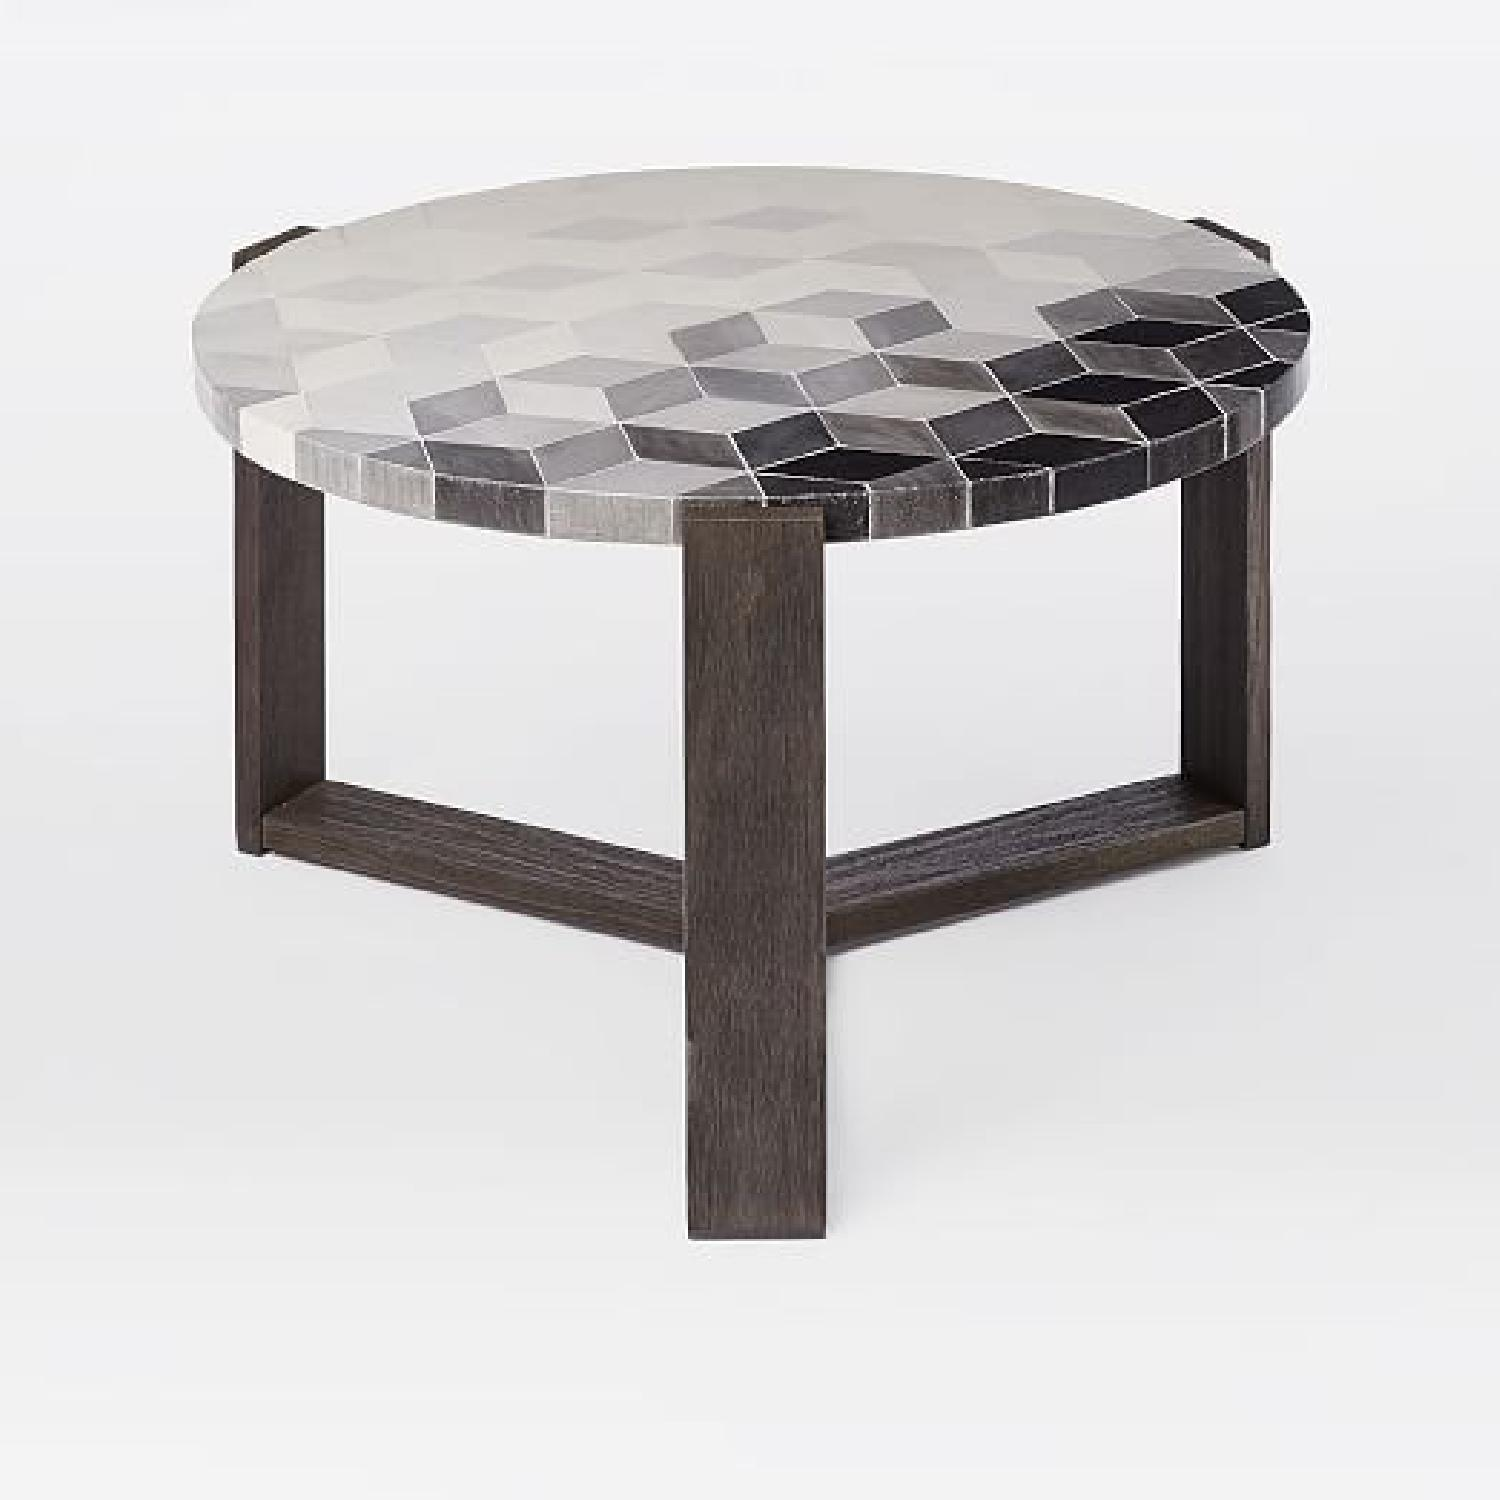 west elm mosaic tiled outdoor coffee table